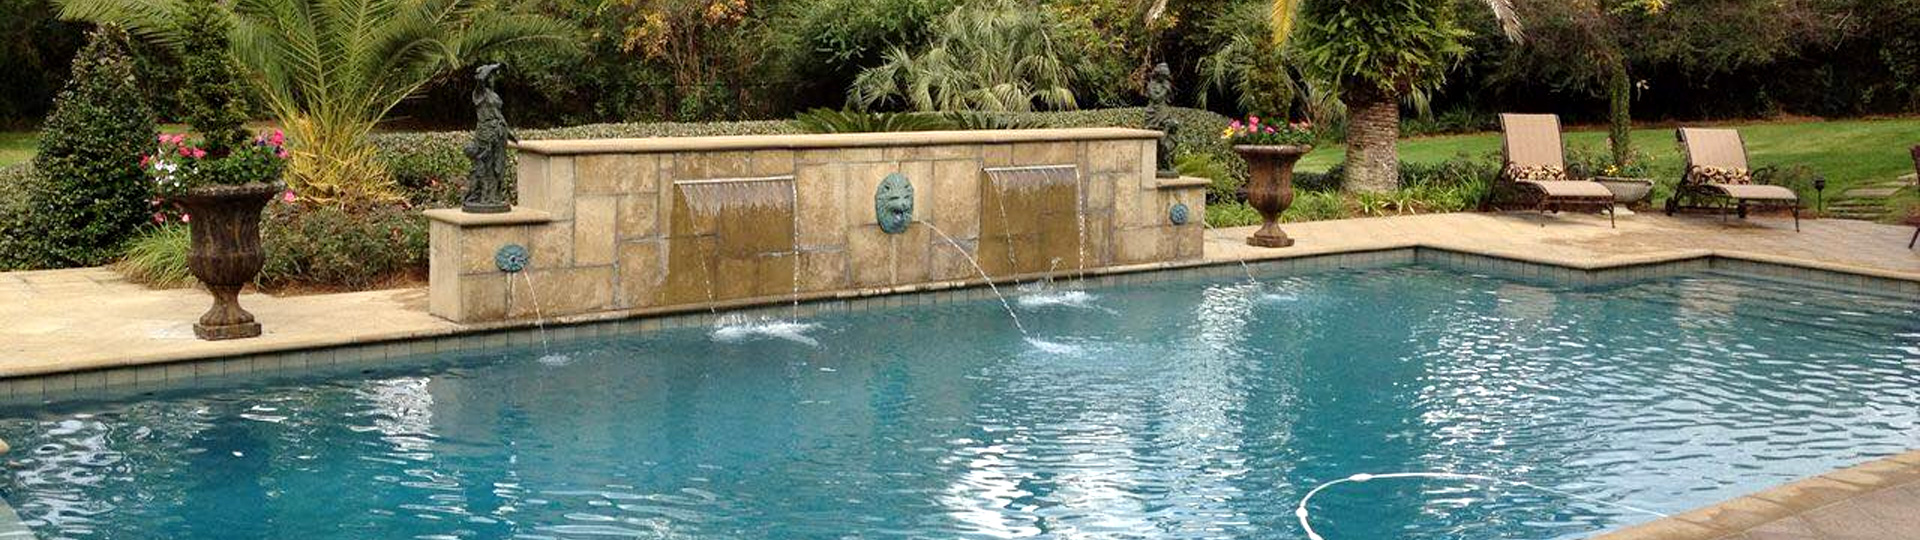 Pool Design, Construction, Repair And Maintenance | Mobile Alabama